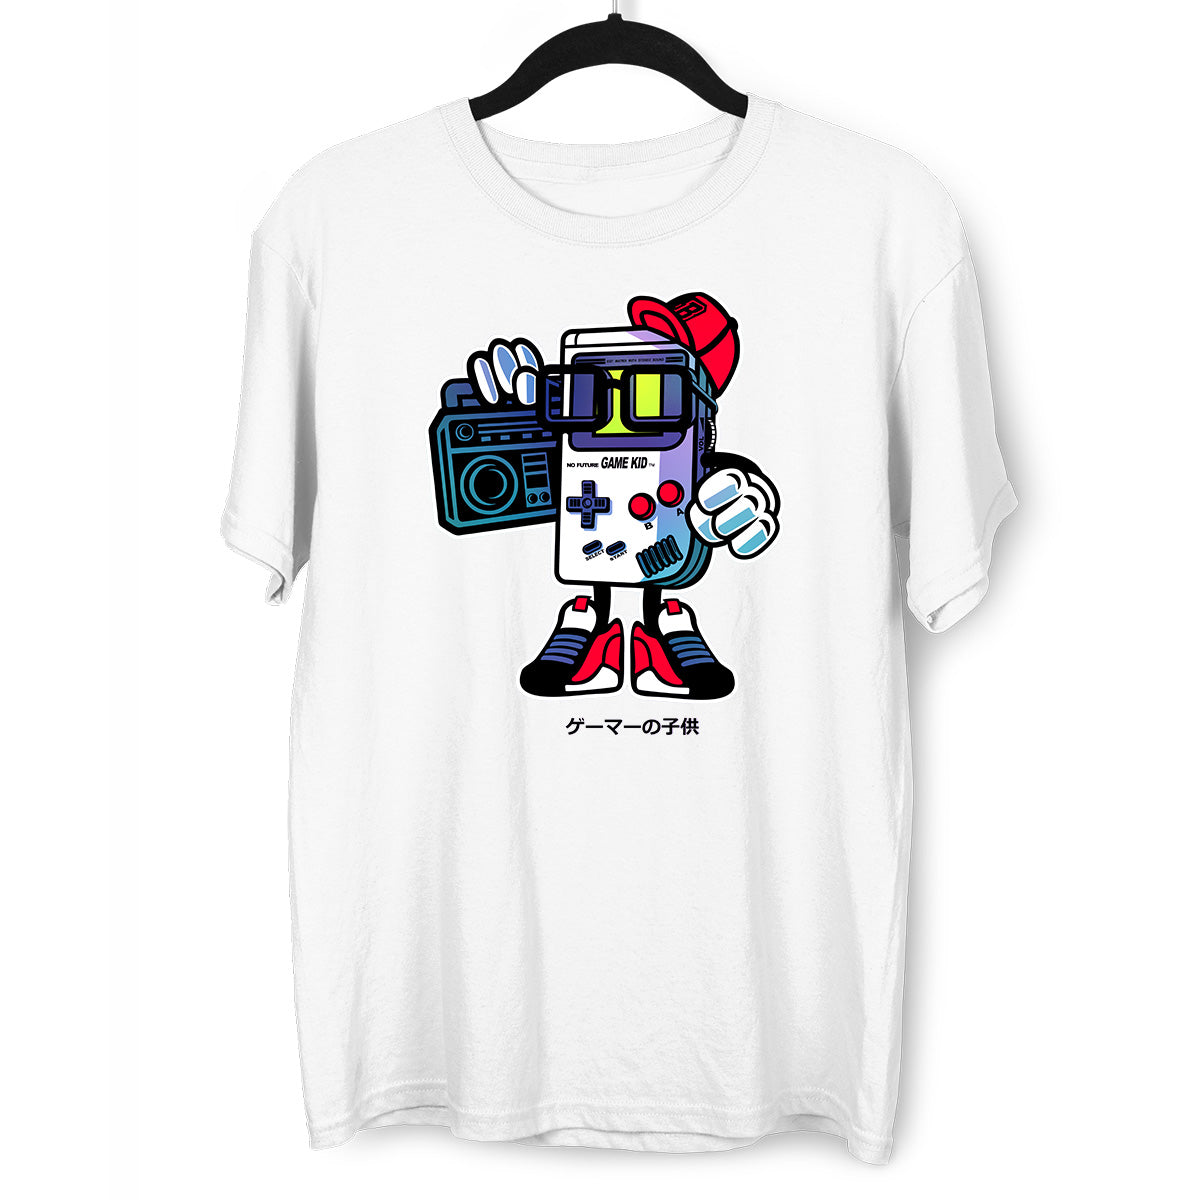 Old School Nintendo Game Kid White T-shirt